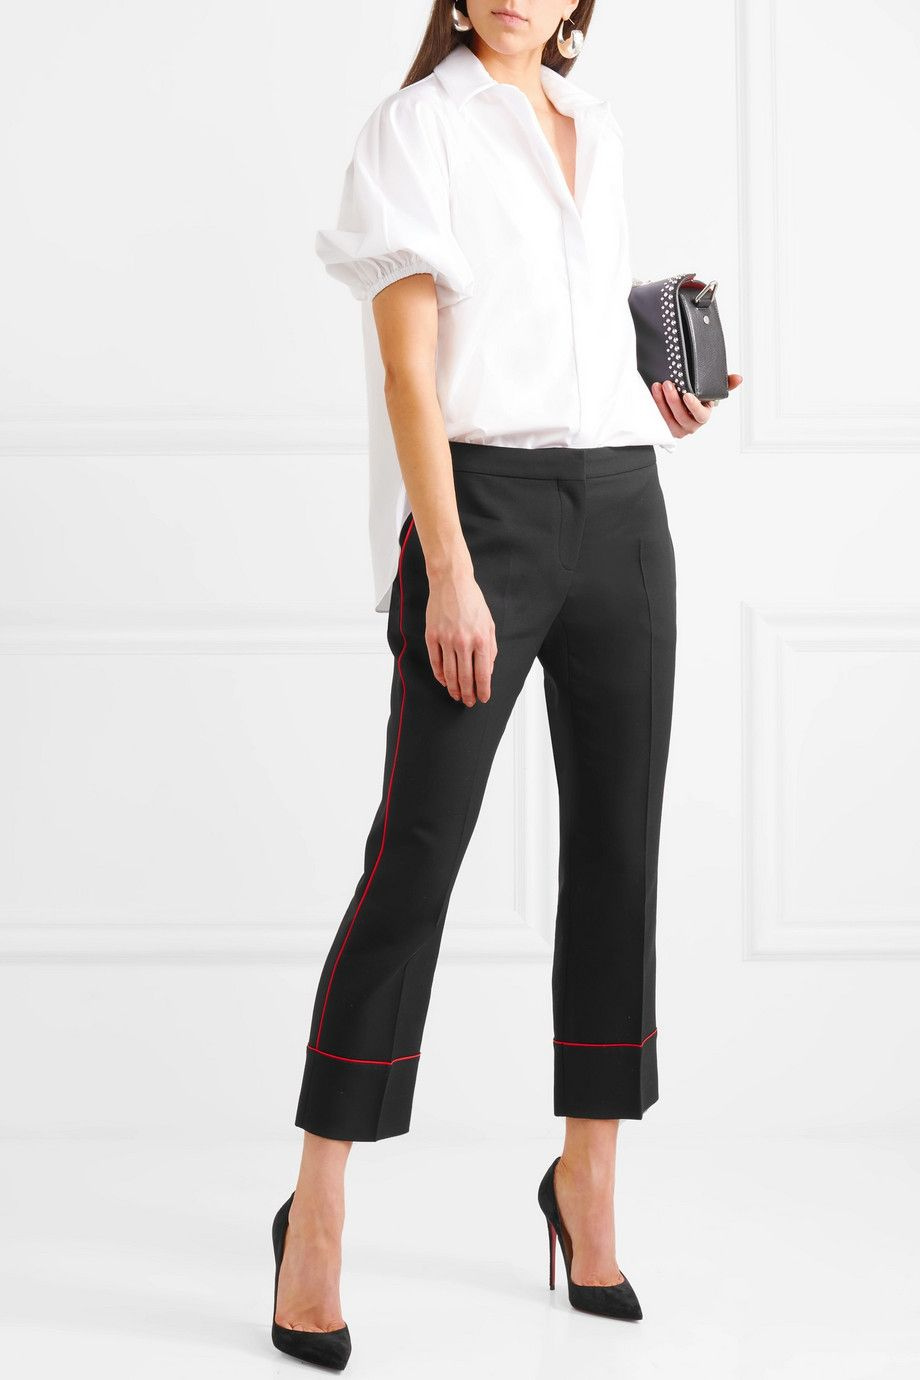 Piped Cropped Wool-blend Straight-leg Pants - Black Alexander McQueen F35Ibt